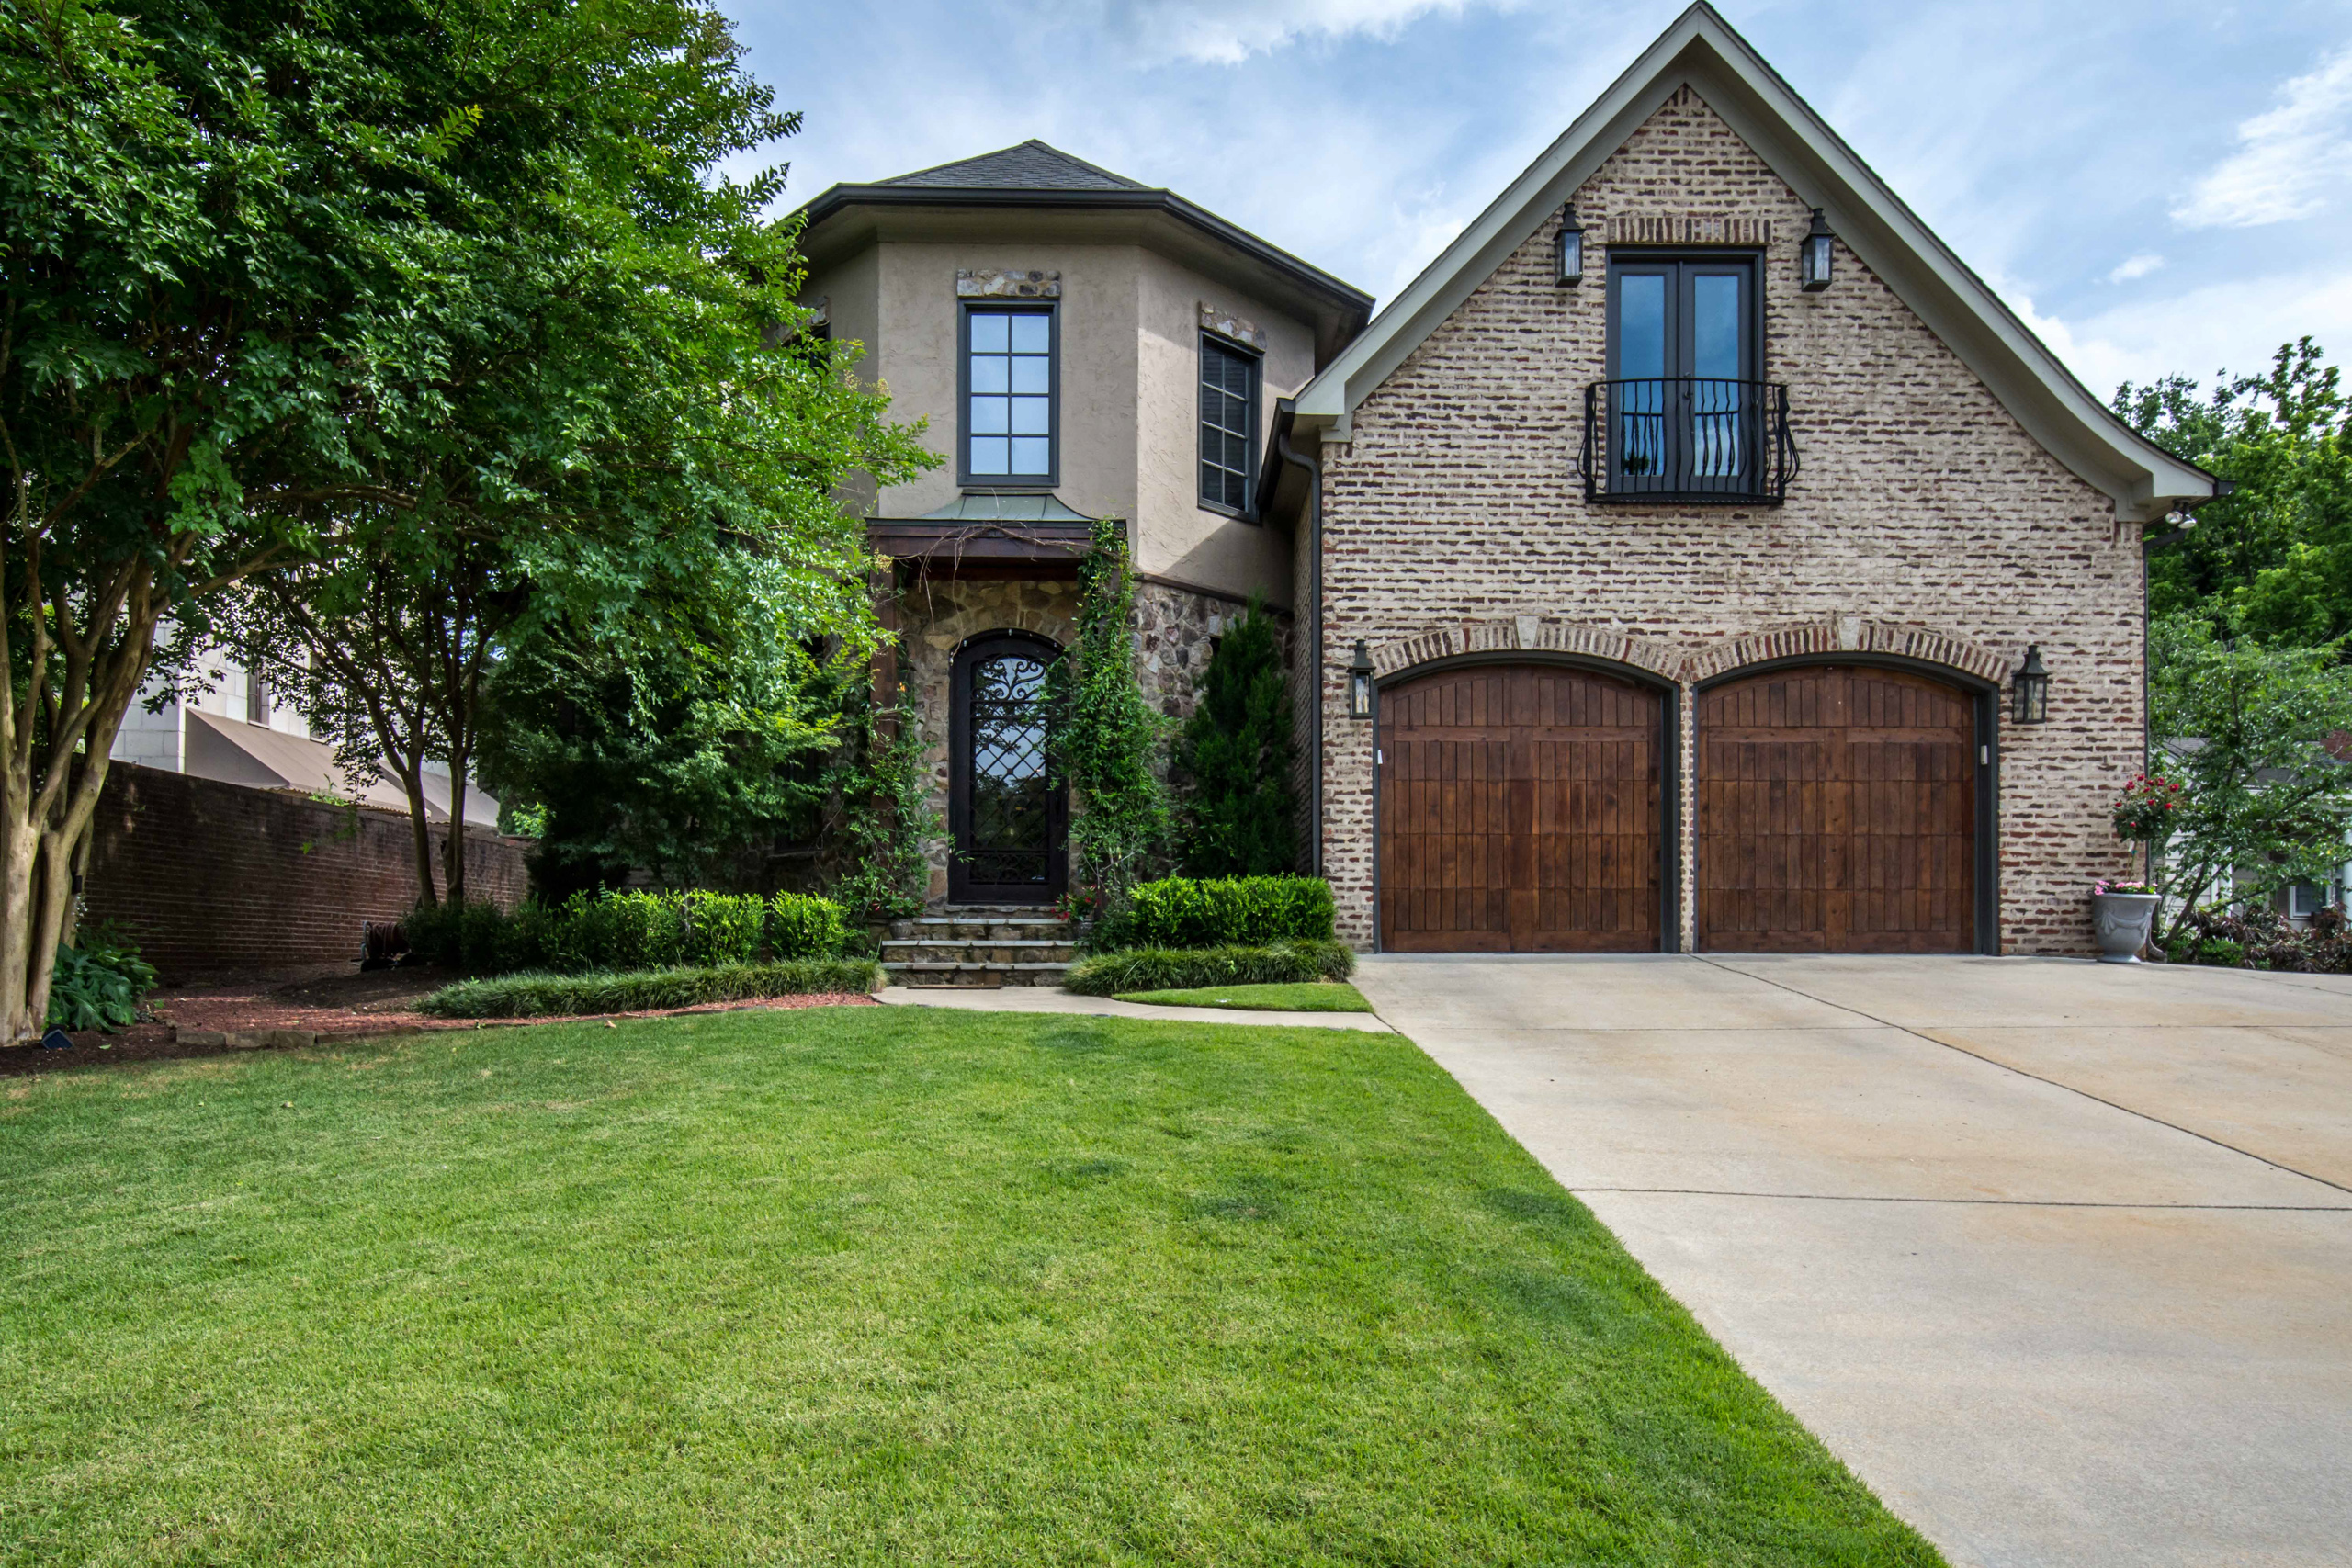 OPEN HOUSE JUNE 23RD | 1 CARLA CIRCLE